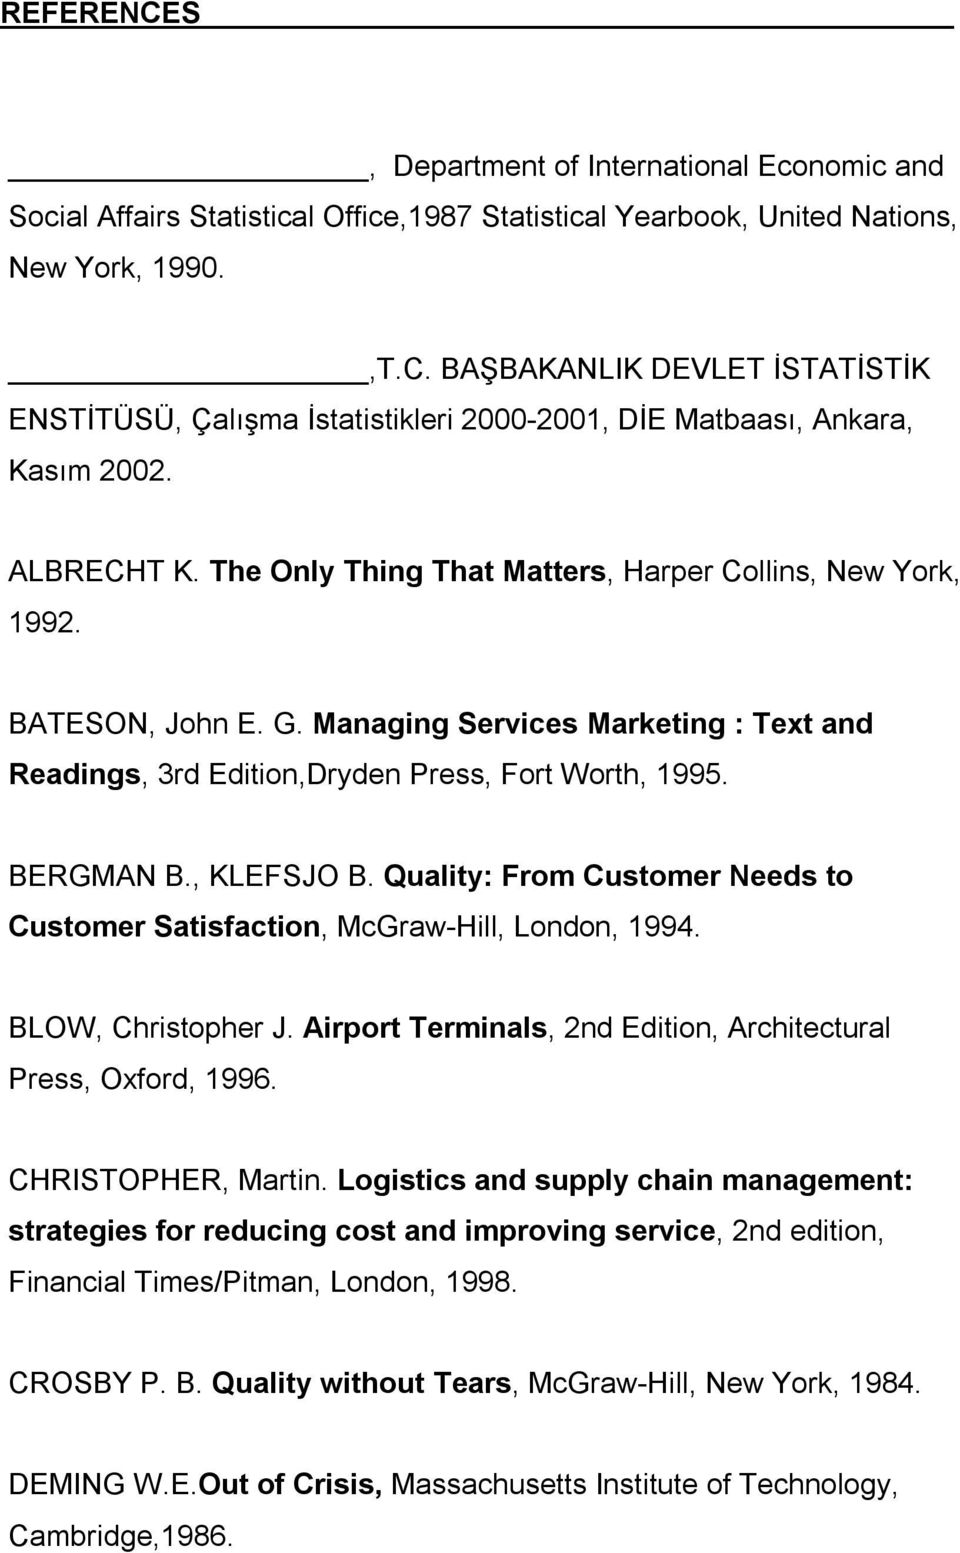 , KLEFSJO B. Quality: From Customer Needs to Customer Satisfaction, McGraw-Hill, London, 1994. BLOW, Christopher J. Airport Terminals, 2nd Edition, Architectural Press, Oxford, 1996.